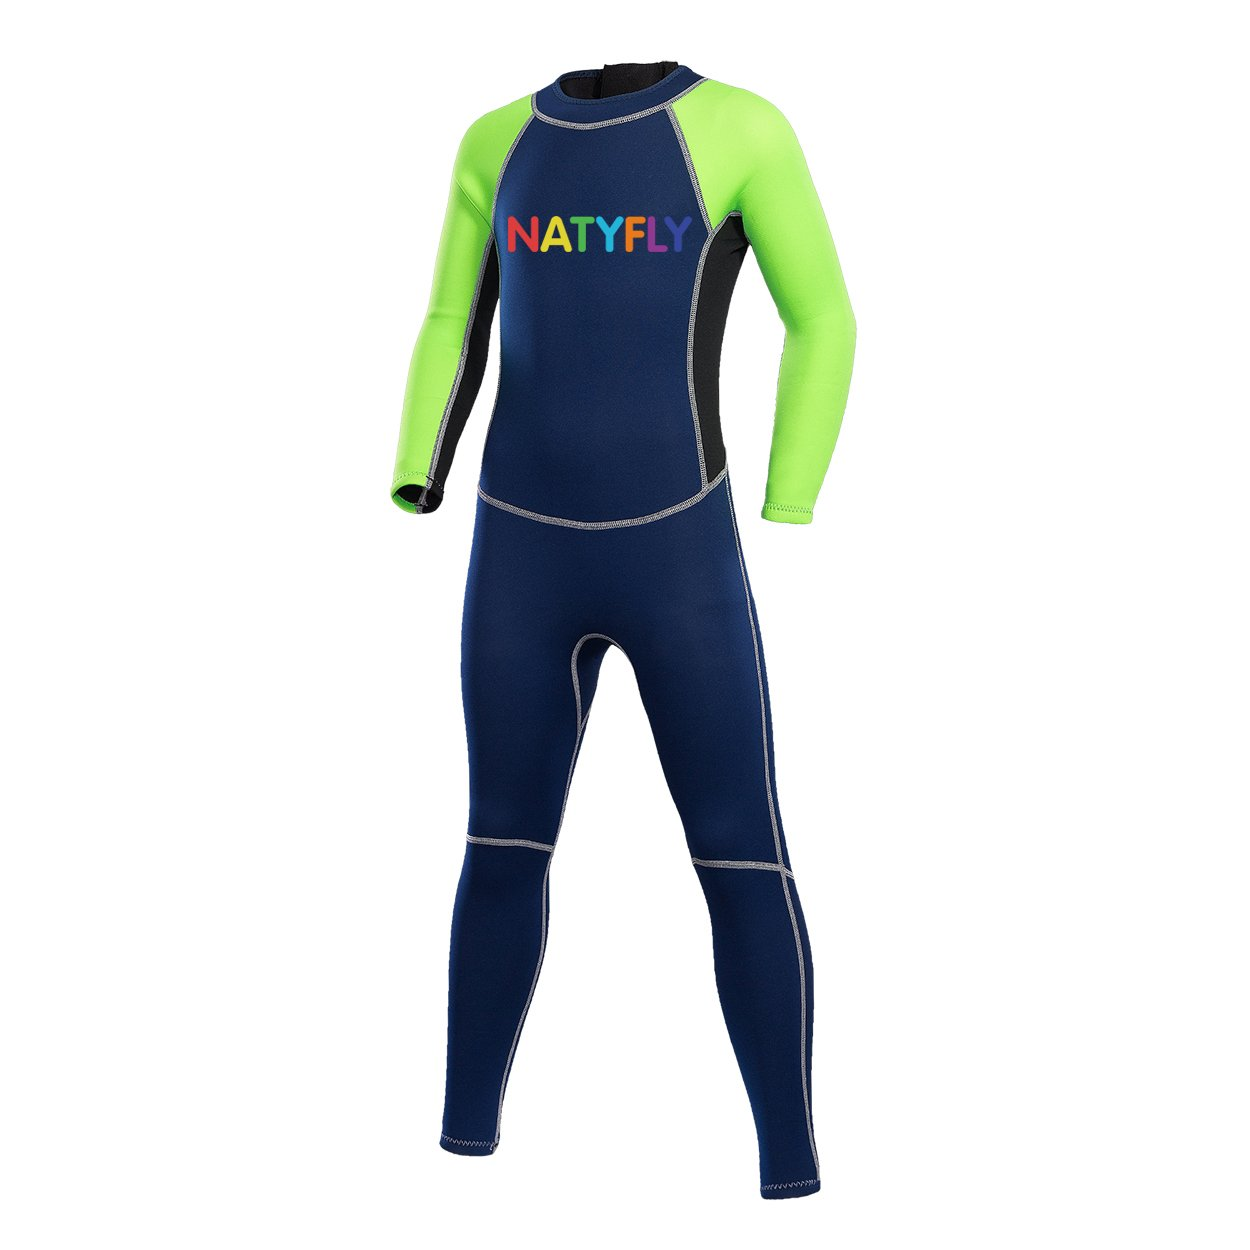 NATYFLY Neoprene Wetsuits for Kids Boys Girls Back Zipper One Piece Swimsuit UV Protection-Brand (Green-2MM-Long Sleeve, XS-for Height 32''-37'') by NATYFLY